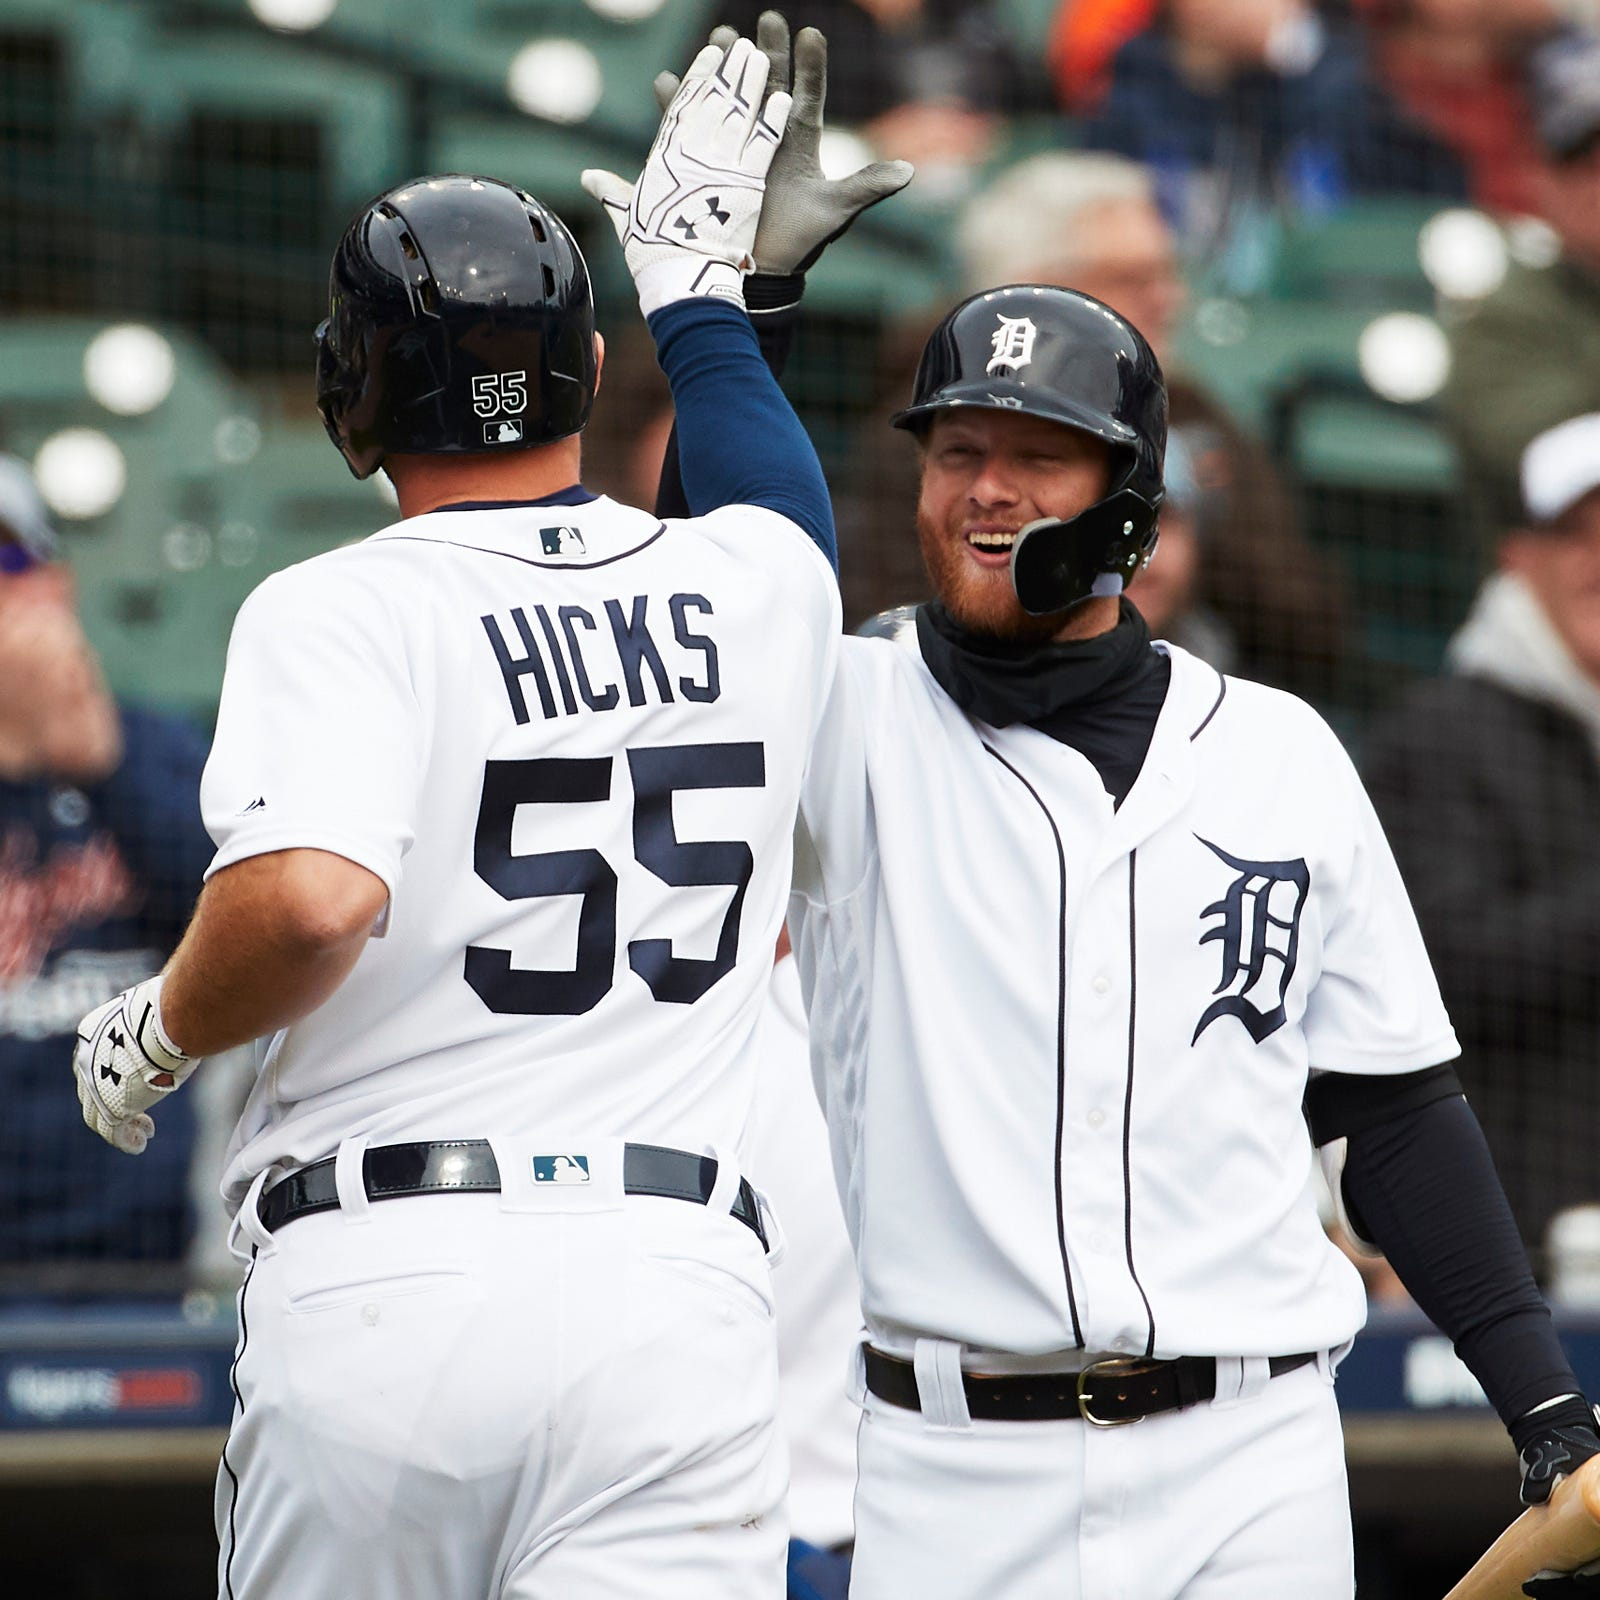 These Detroit Tigers are winning ball games. Sit back and enjoy it